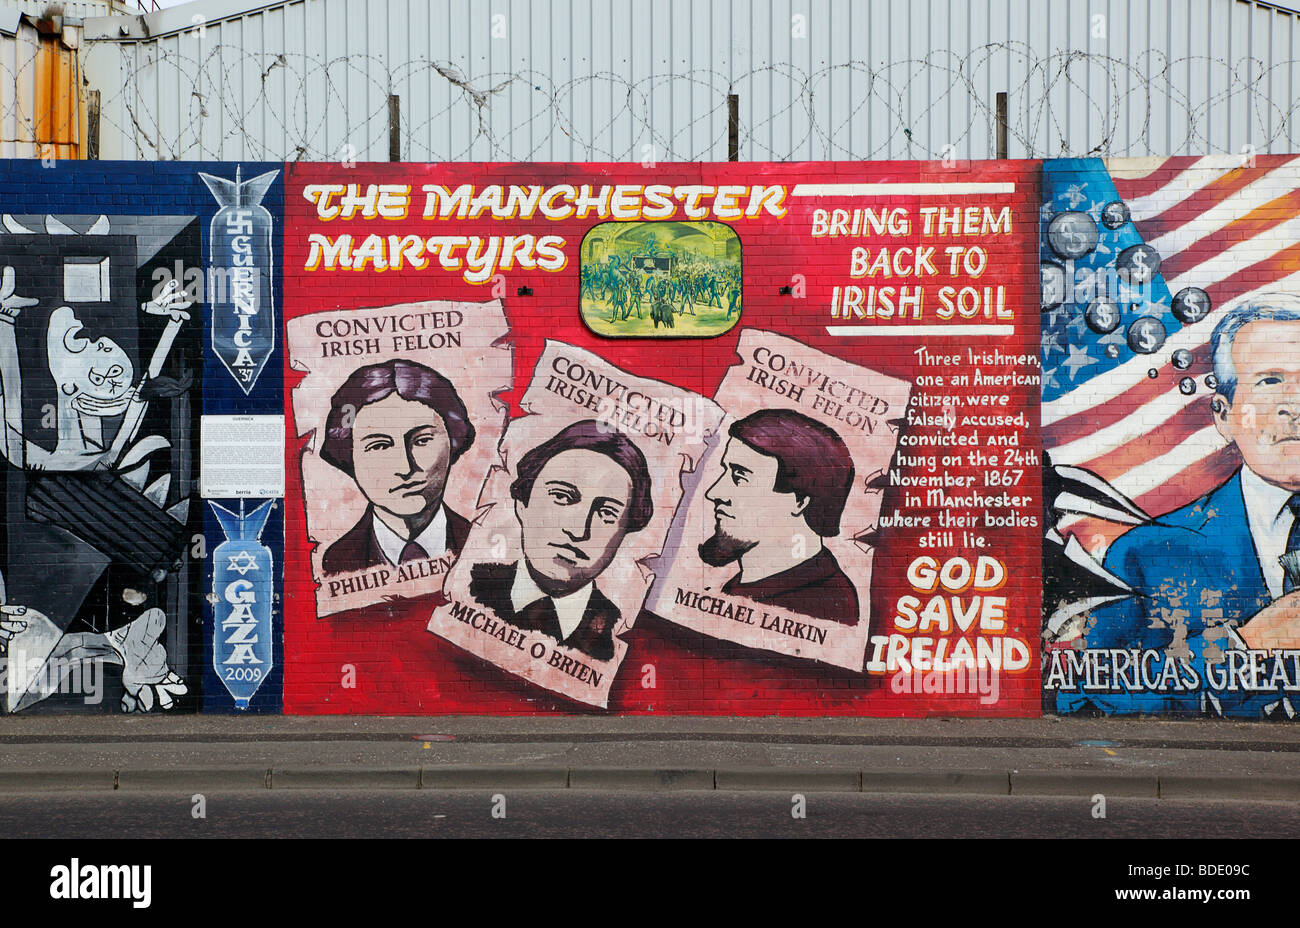 IRELAND, North, Belfast, West, Falls Road, Political murals painted on walls of the Lower Falls Road Stock Photo